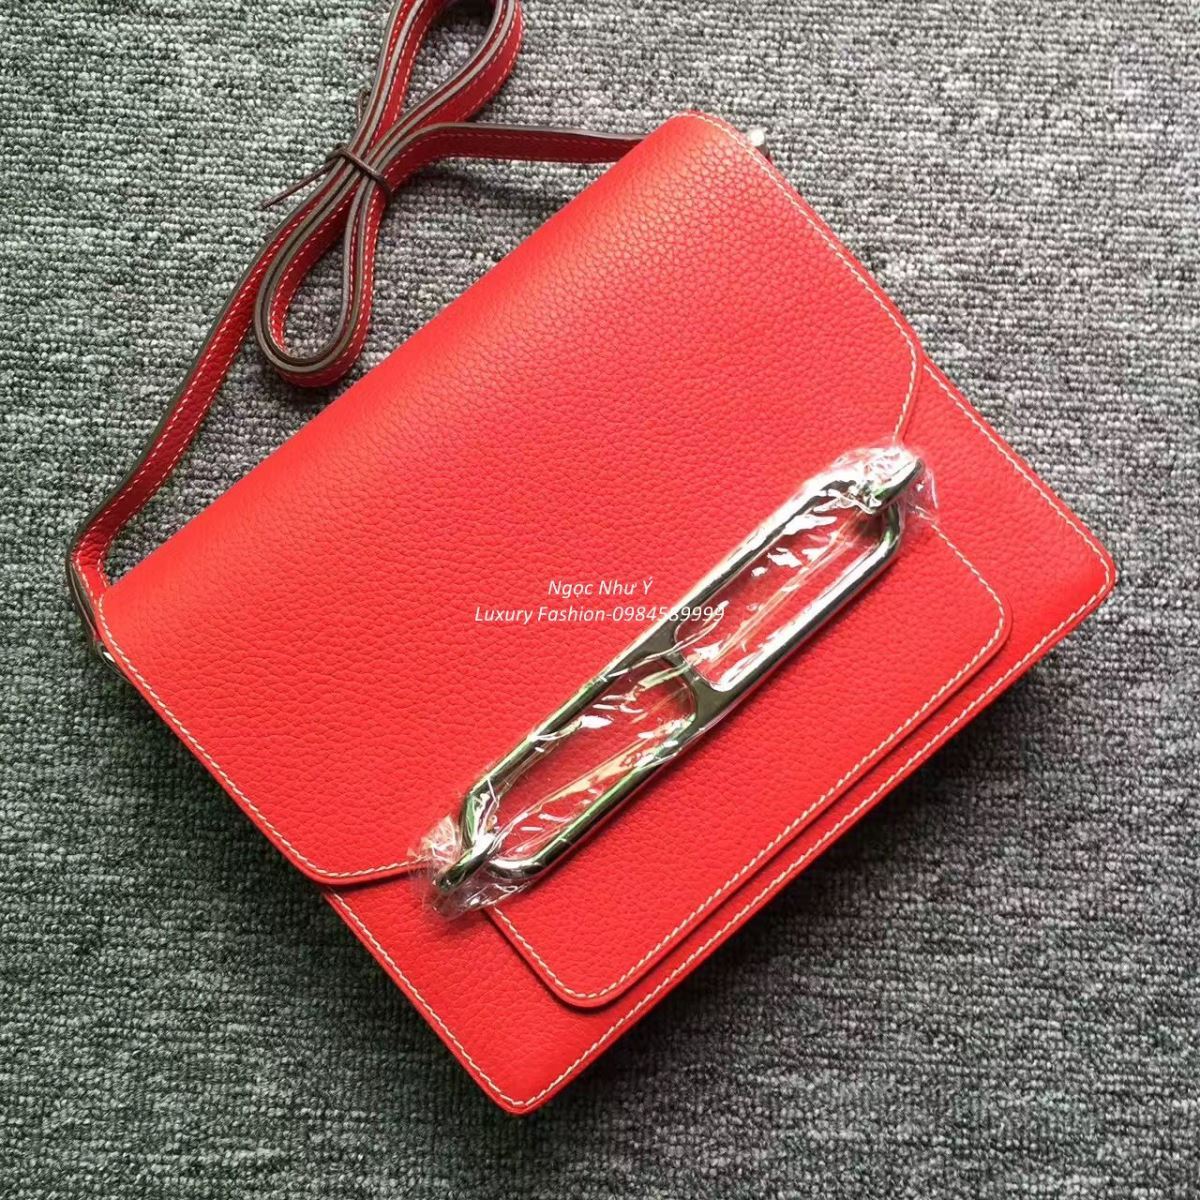 Túi Hermes Roulis Mini 19 Togo màu Candy Red